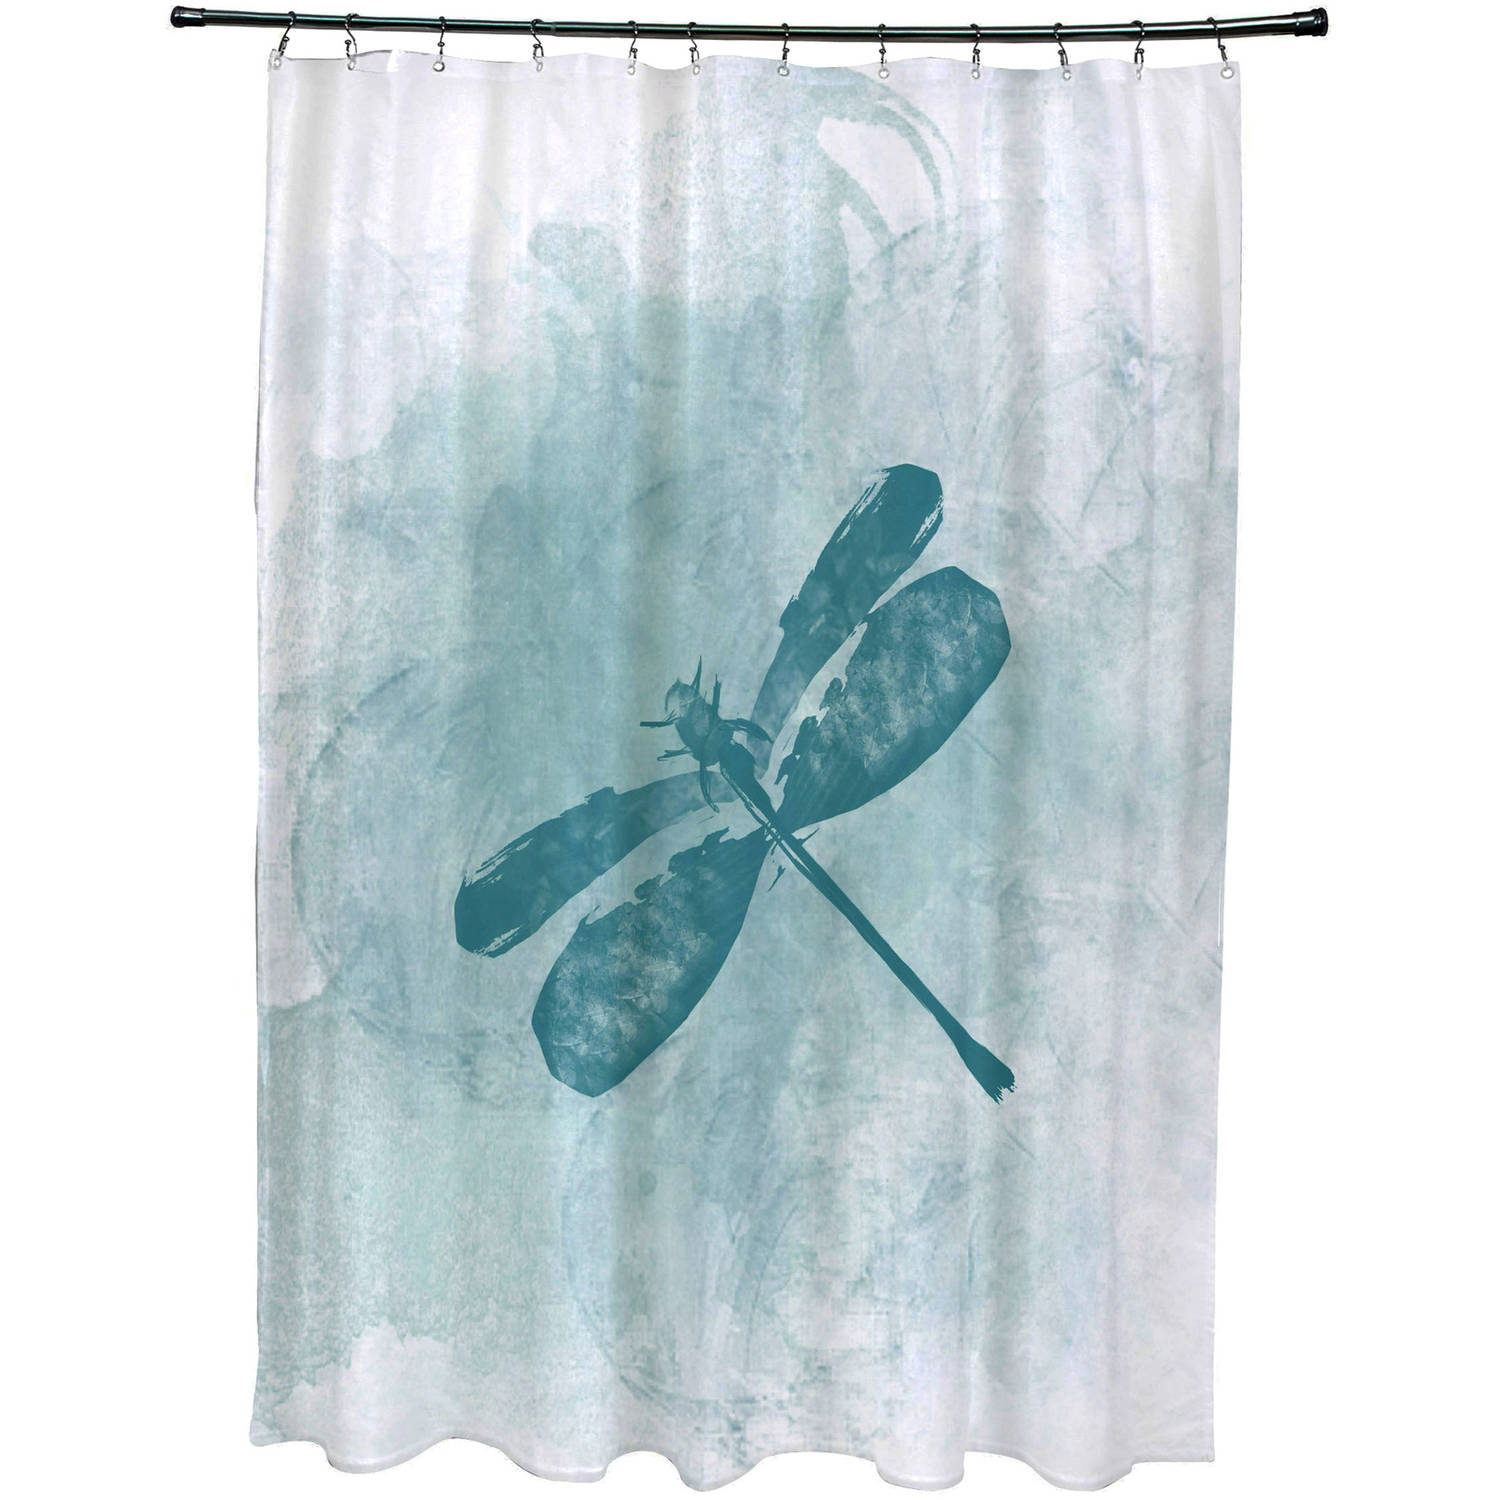 "Simply Daisy 71"" x 74"" Dragonfly Summer Animal Print Shower Curtain"